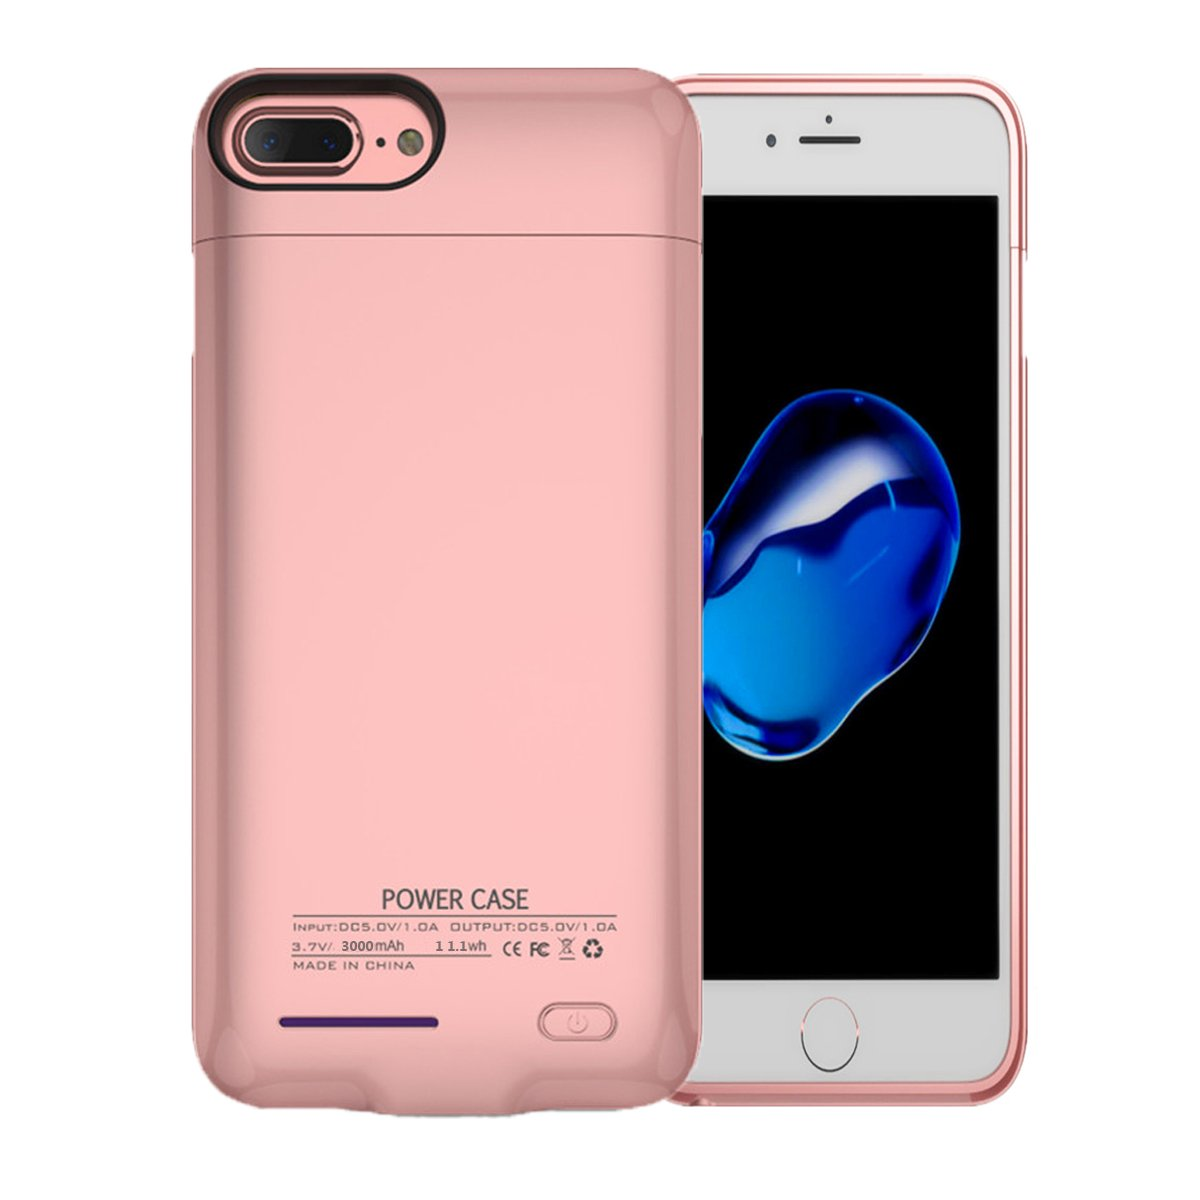 AITOO iPhone 7 Battery Case Slim - iPhone 8/7 Charger Case 3000mAh Magnetic Battery Cases Slim Rechargeable External Battery Pack iPhone 8/7/6s/6 - [Rose Gold]